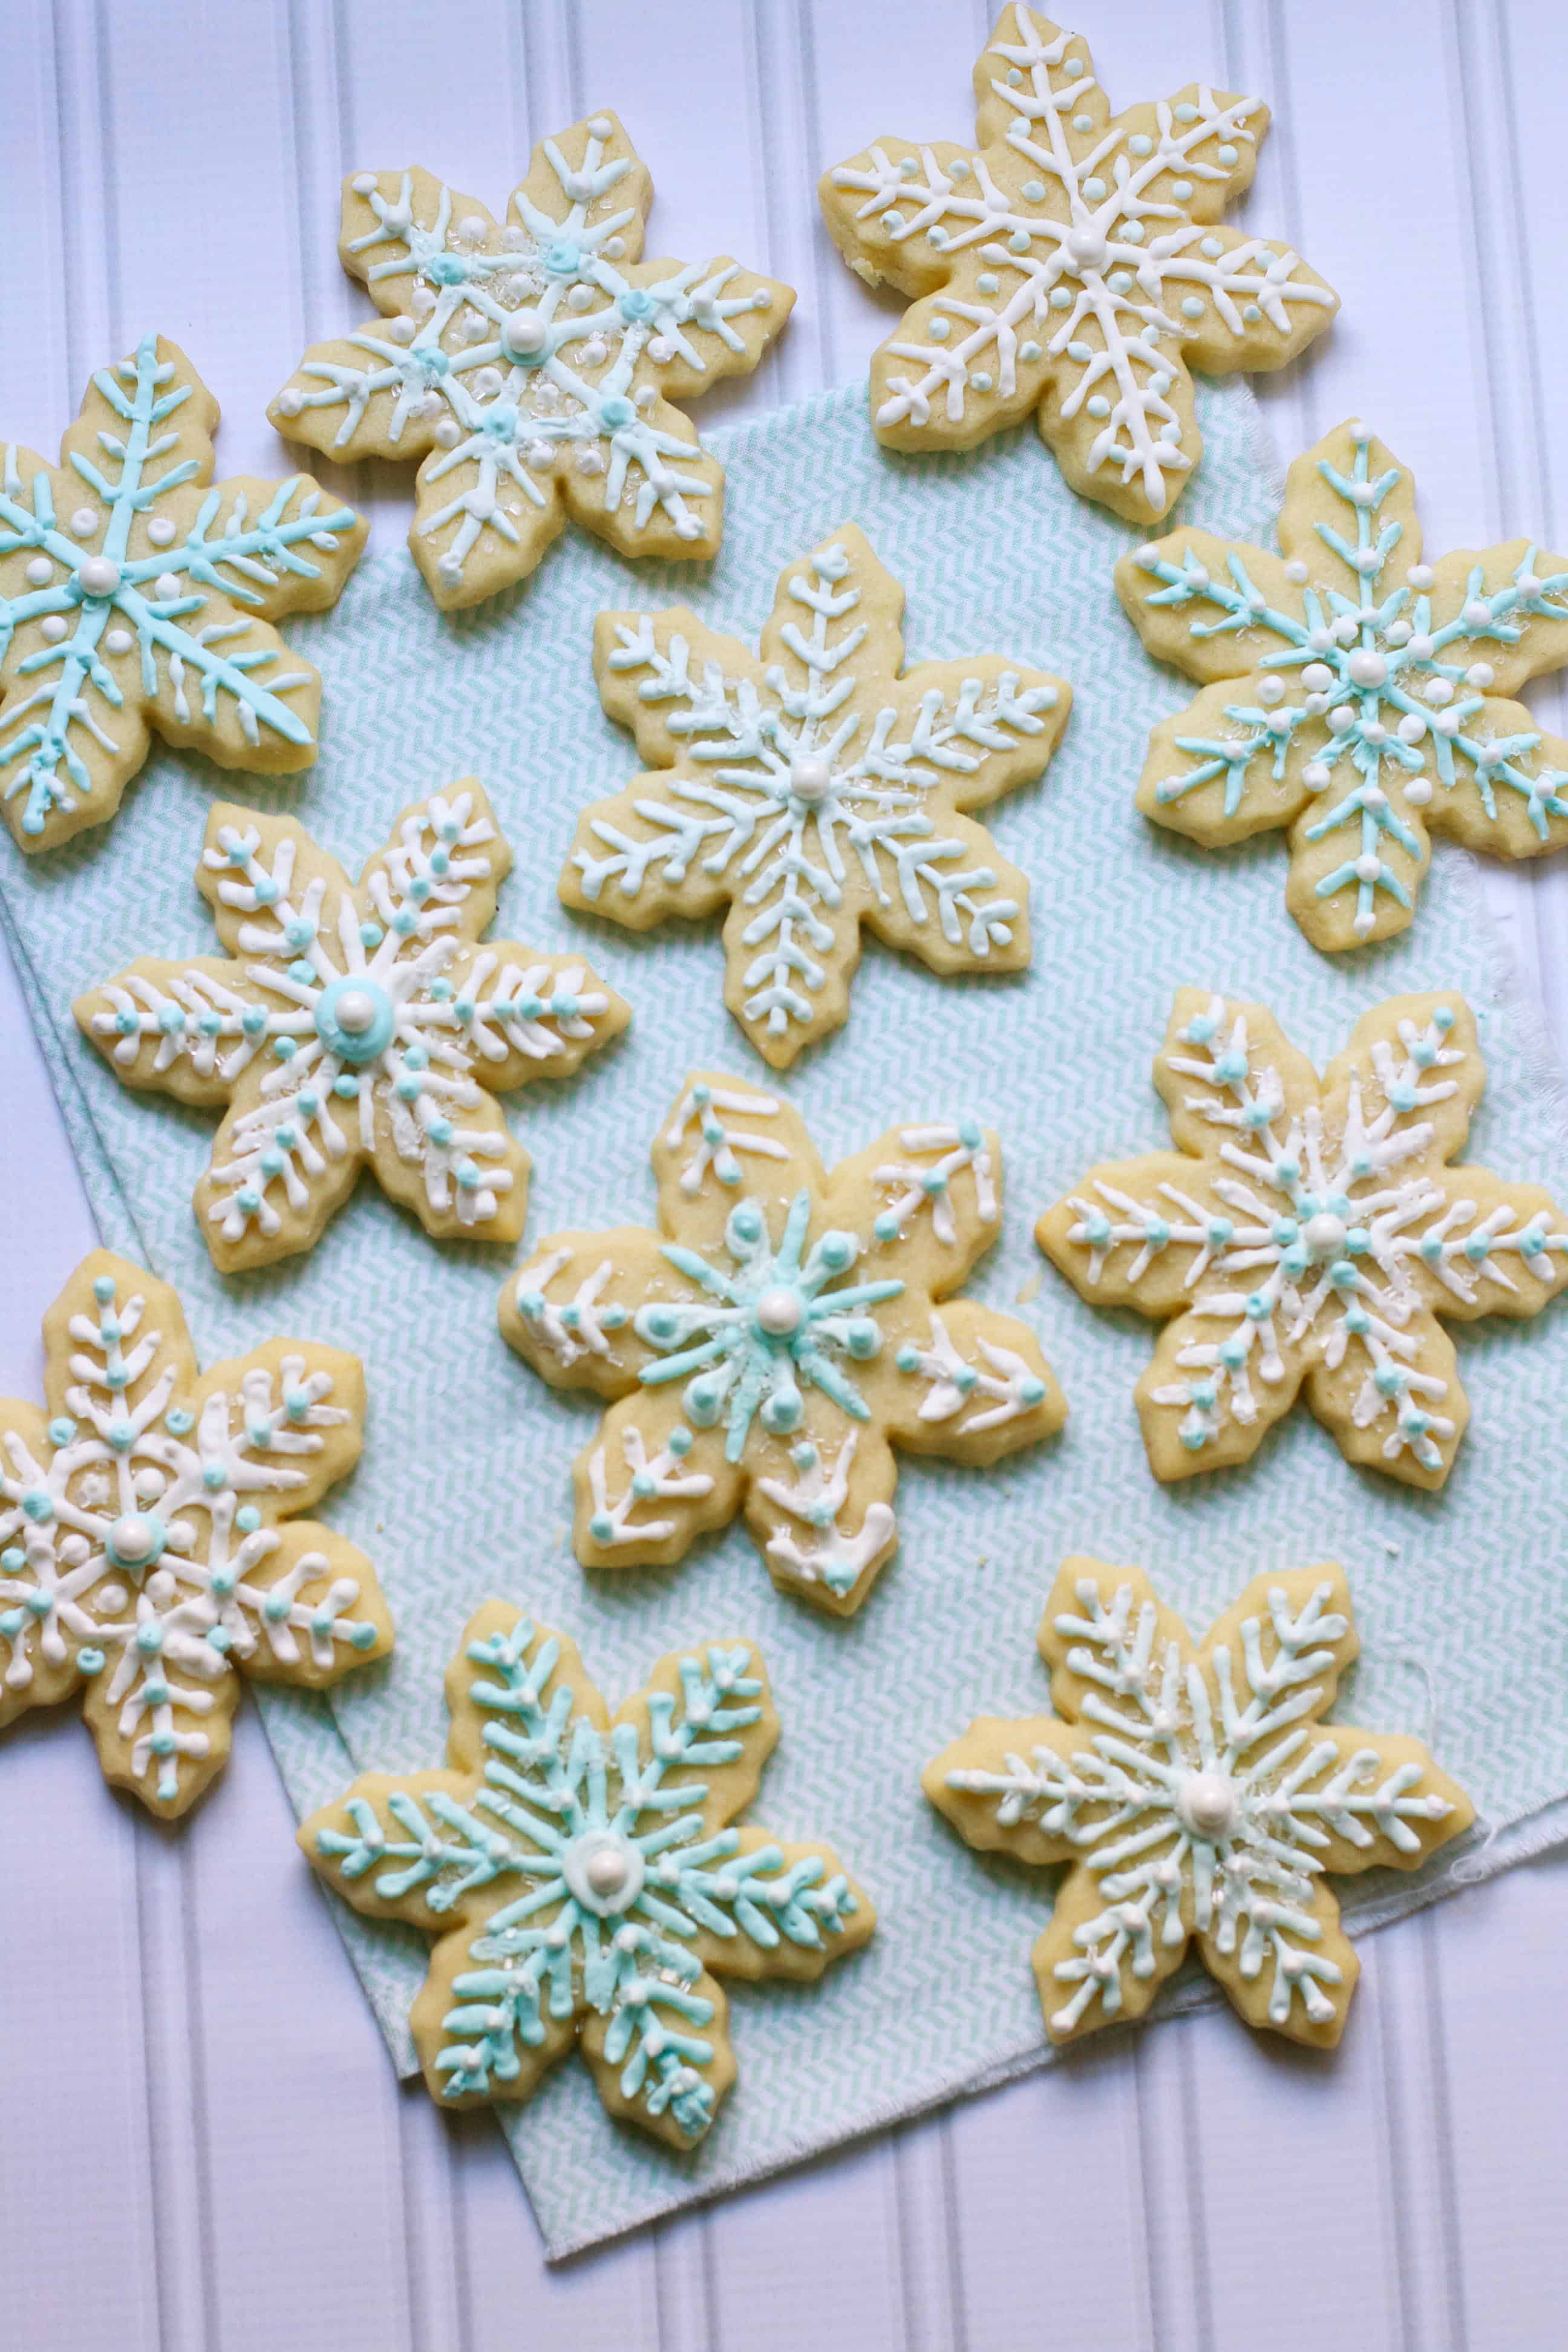 Frosted Snowflake Sugar Cookies